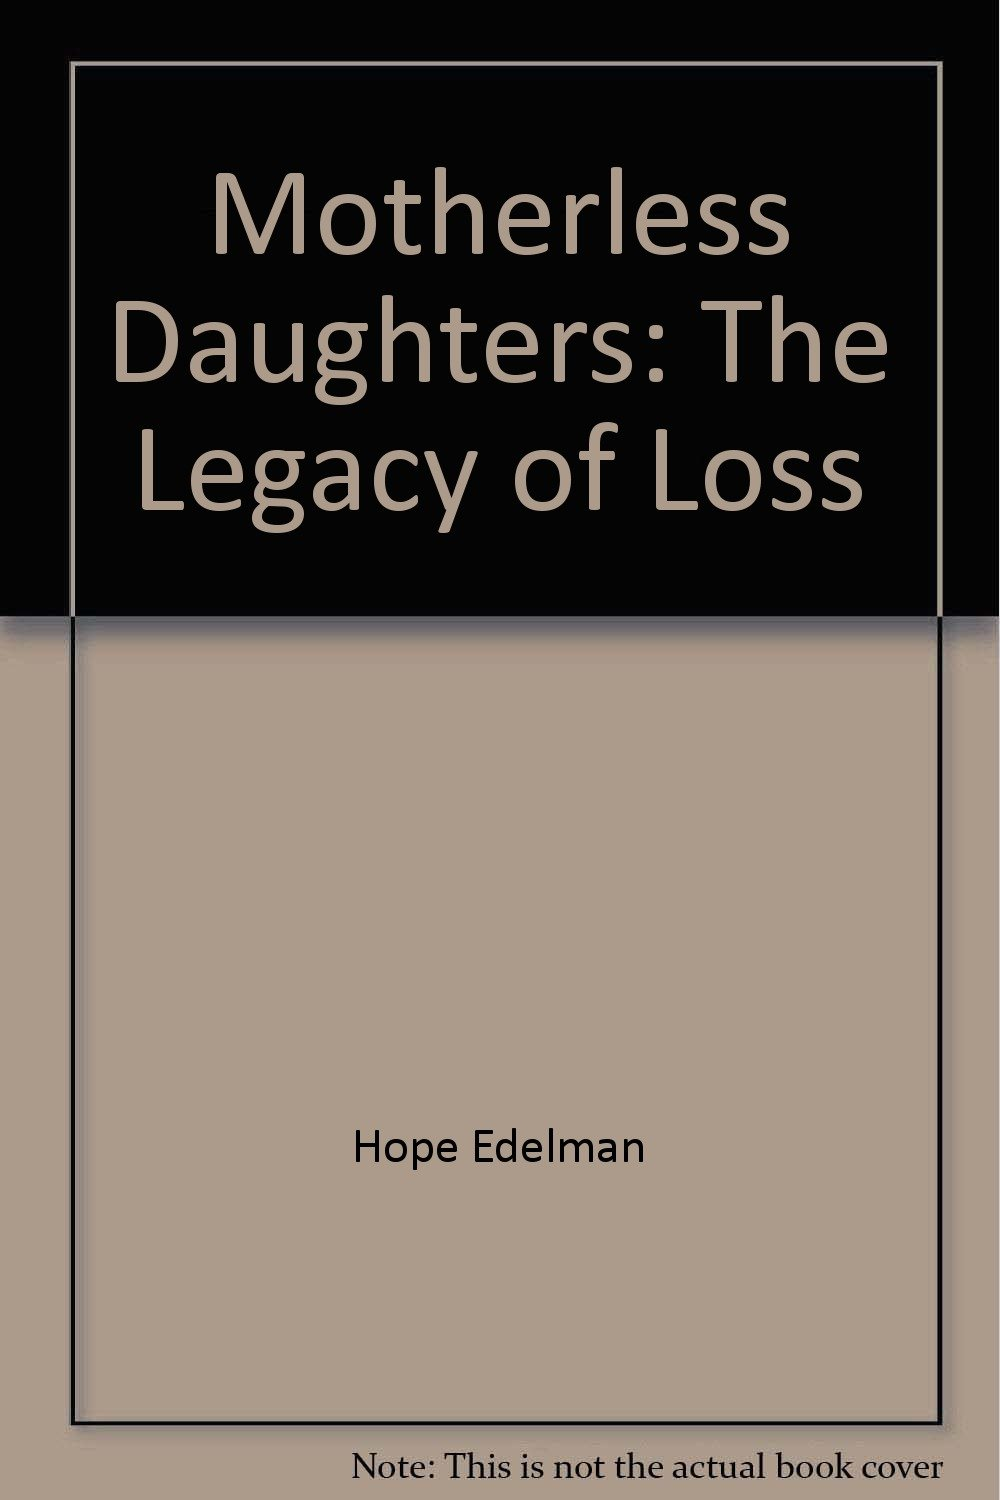 Motherless Daughters Legacy Loss Edelman